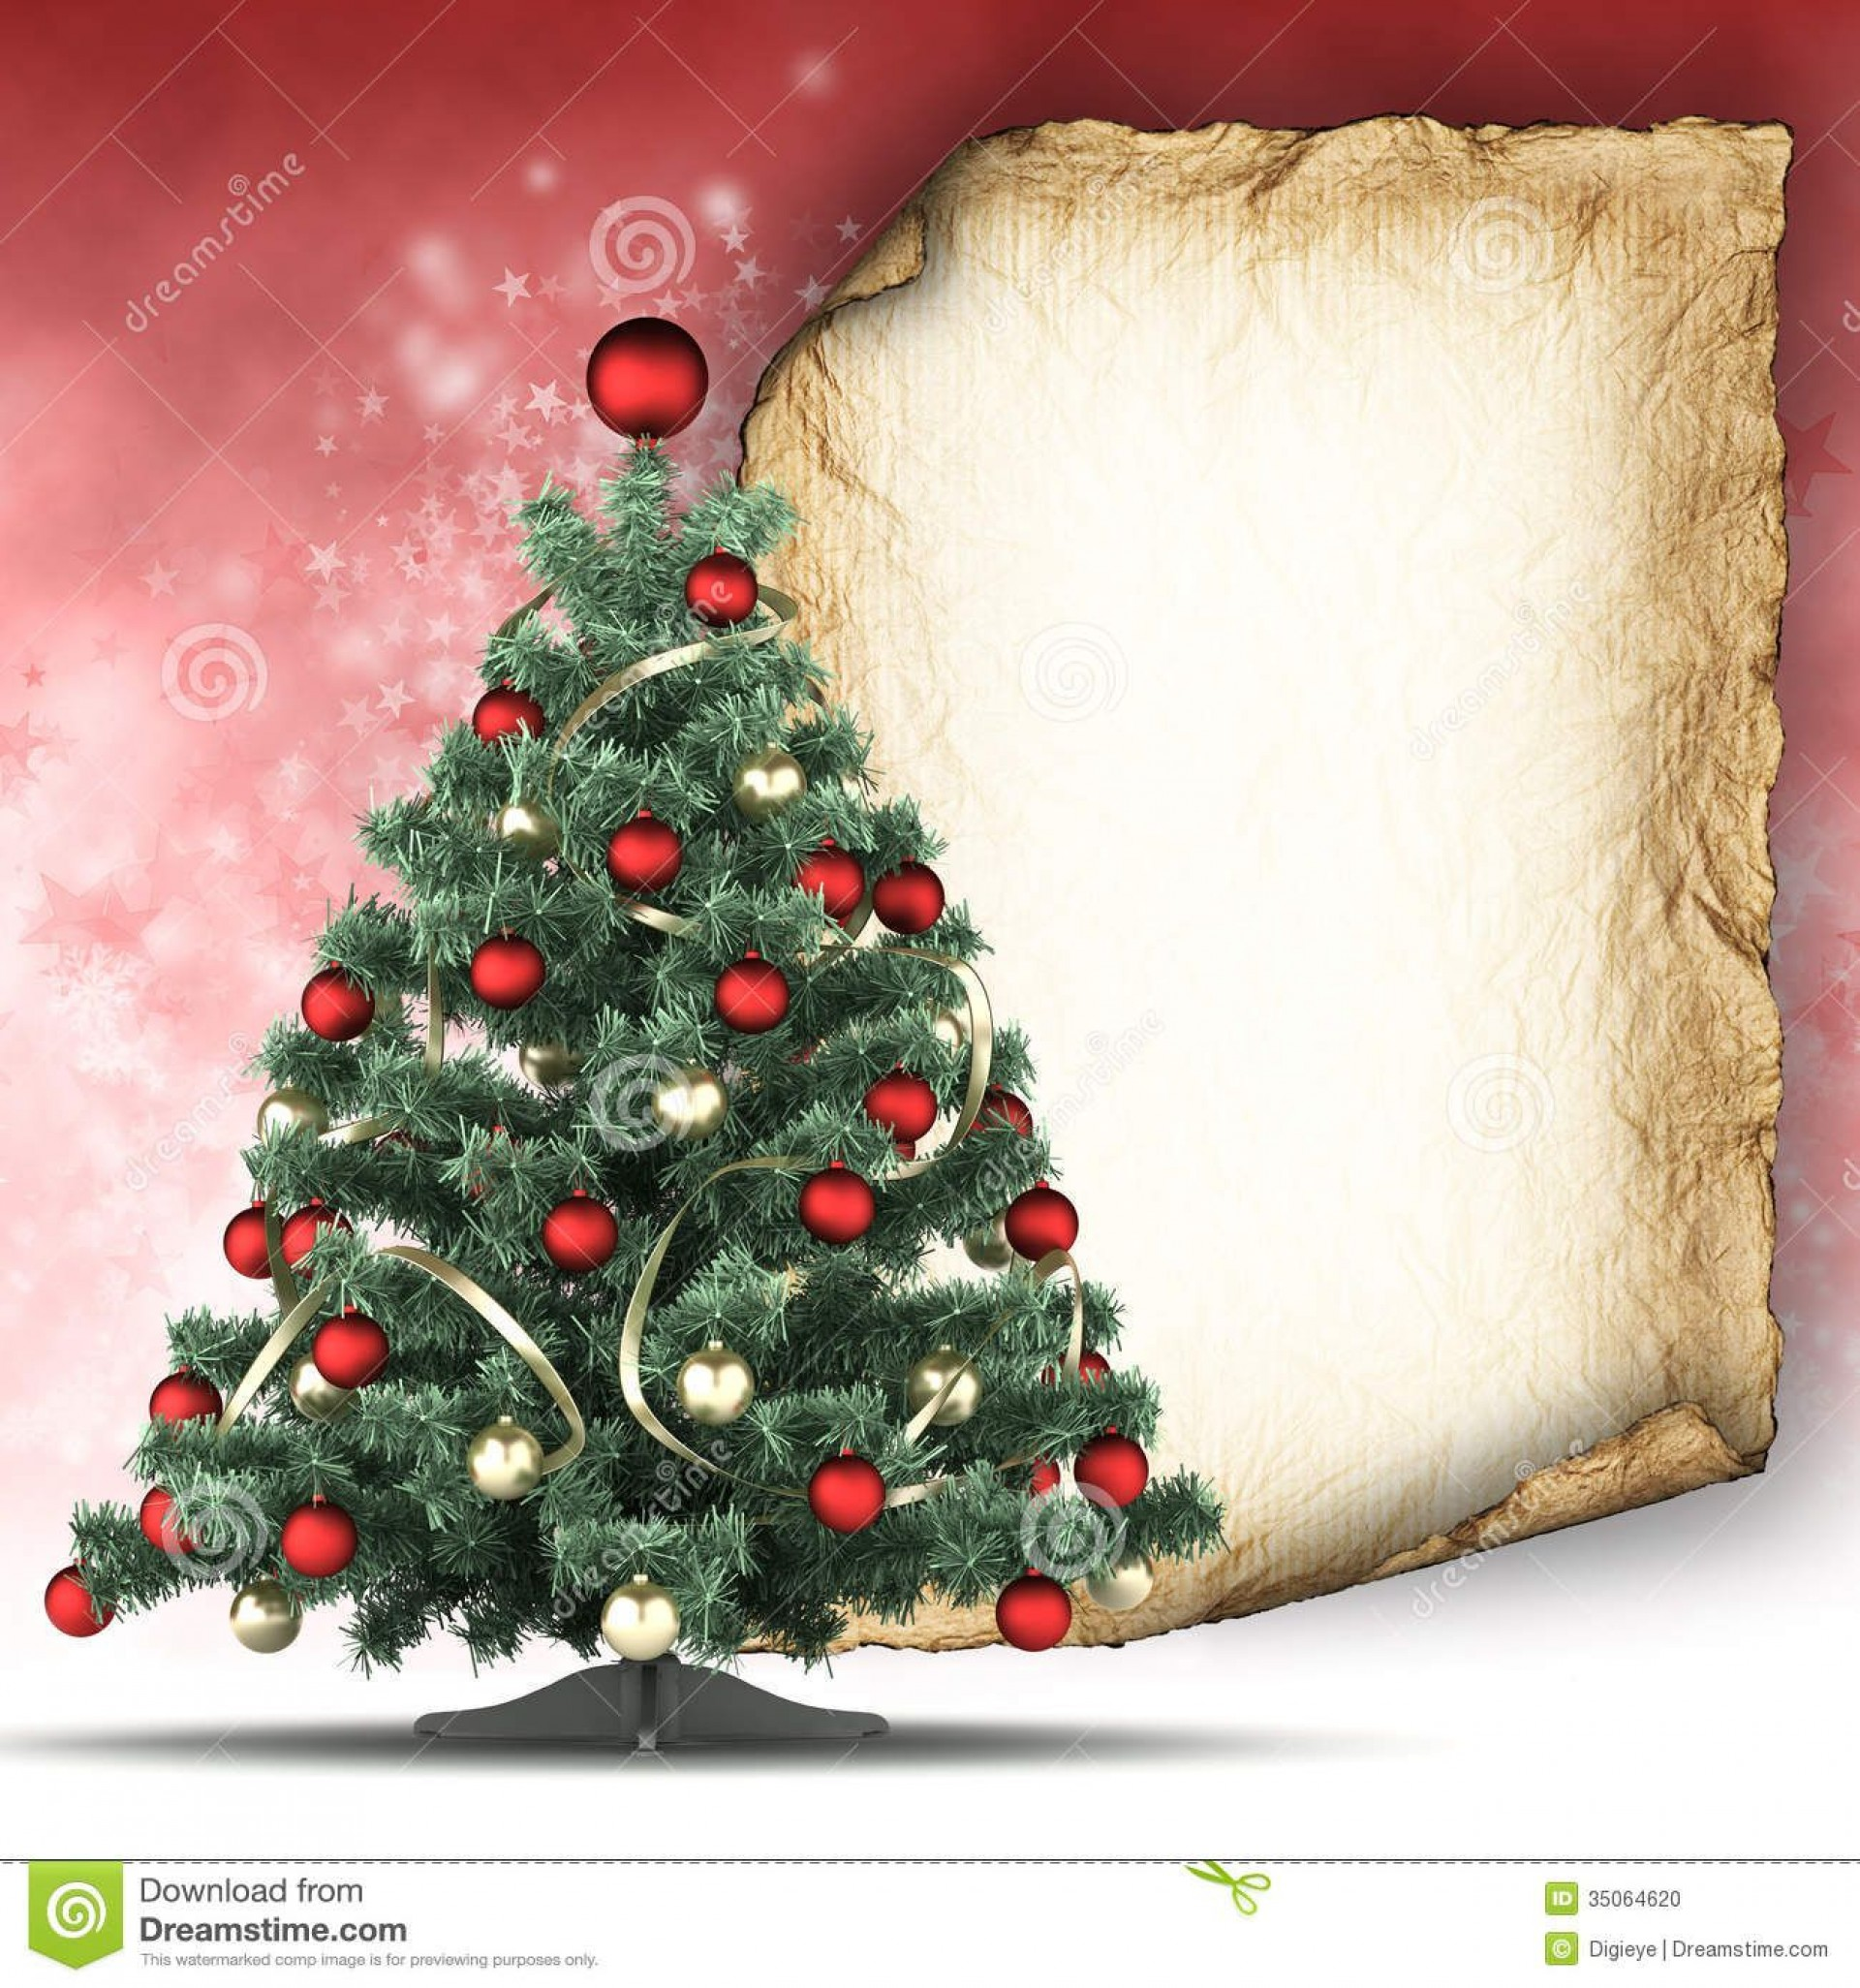 007 Remarkable Christma Card Template Free Download Image  Downloads Photoshop Photo Editable1920